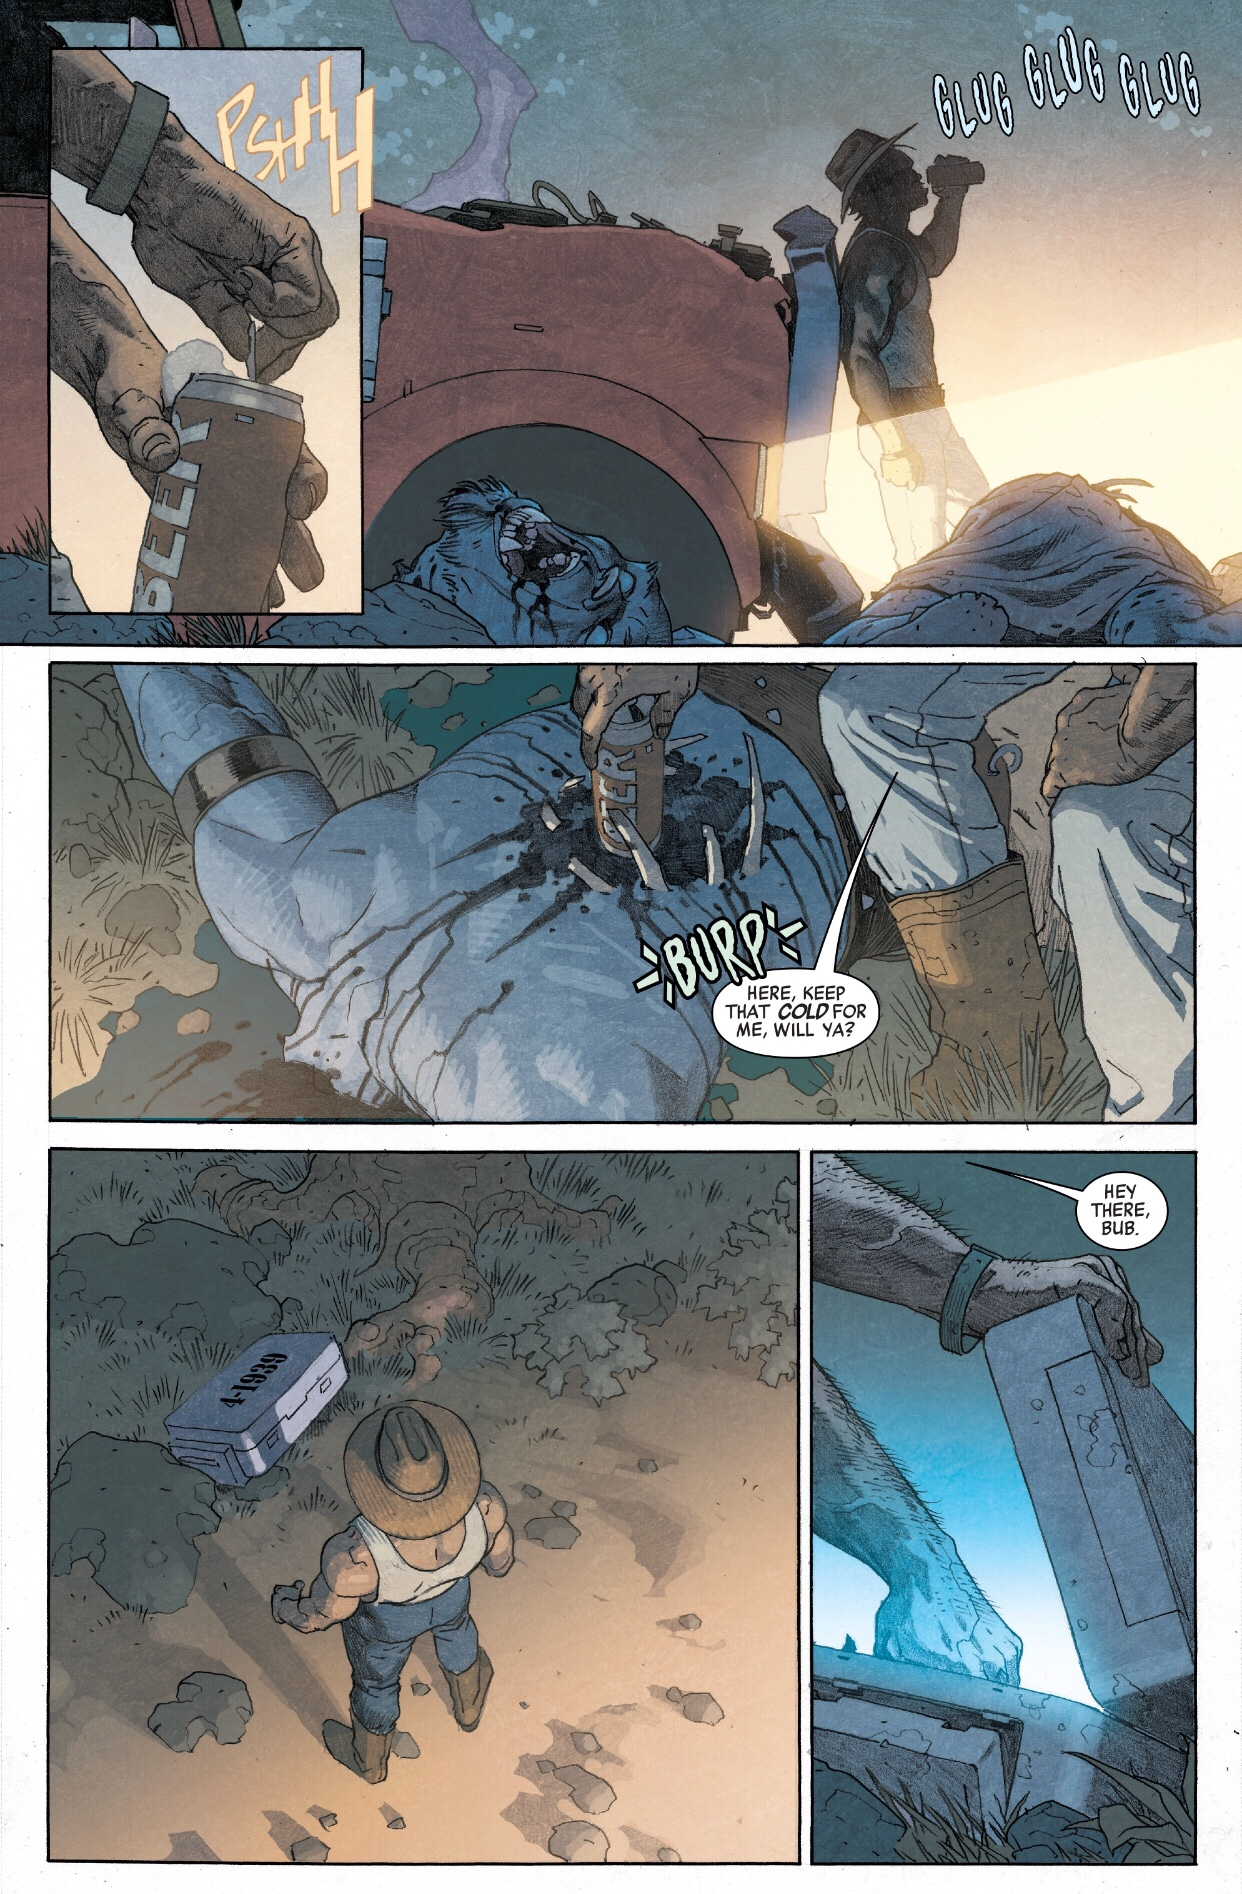 Wolverine finds the space stone